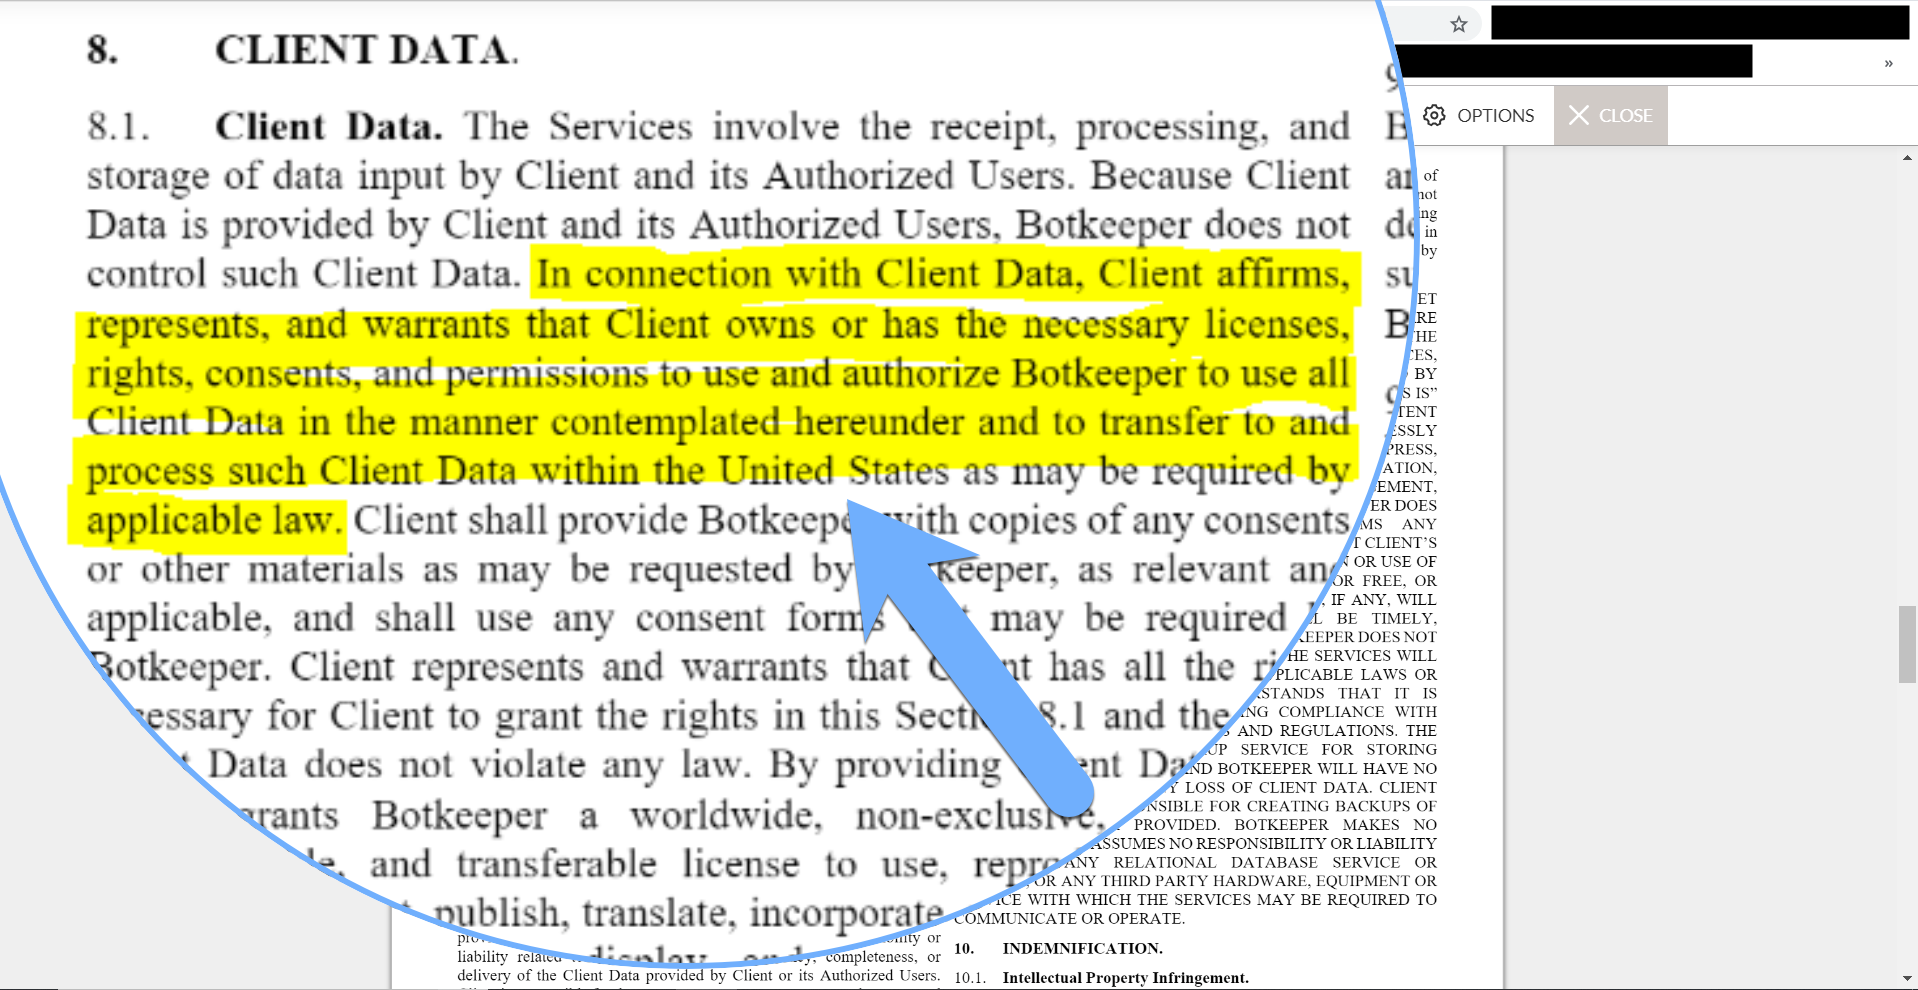 Screenshot of a purported Botkeeper accounting partner agreement